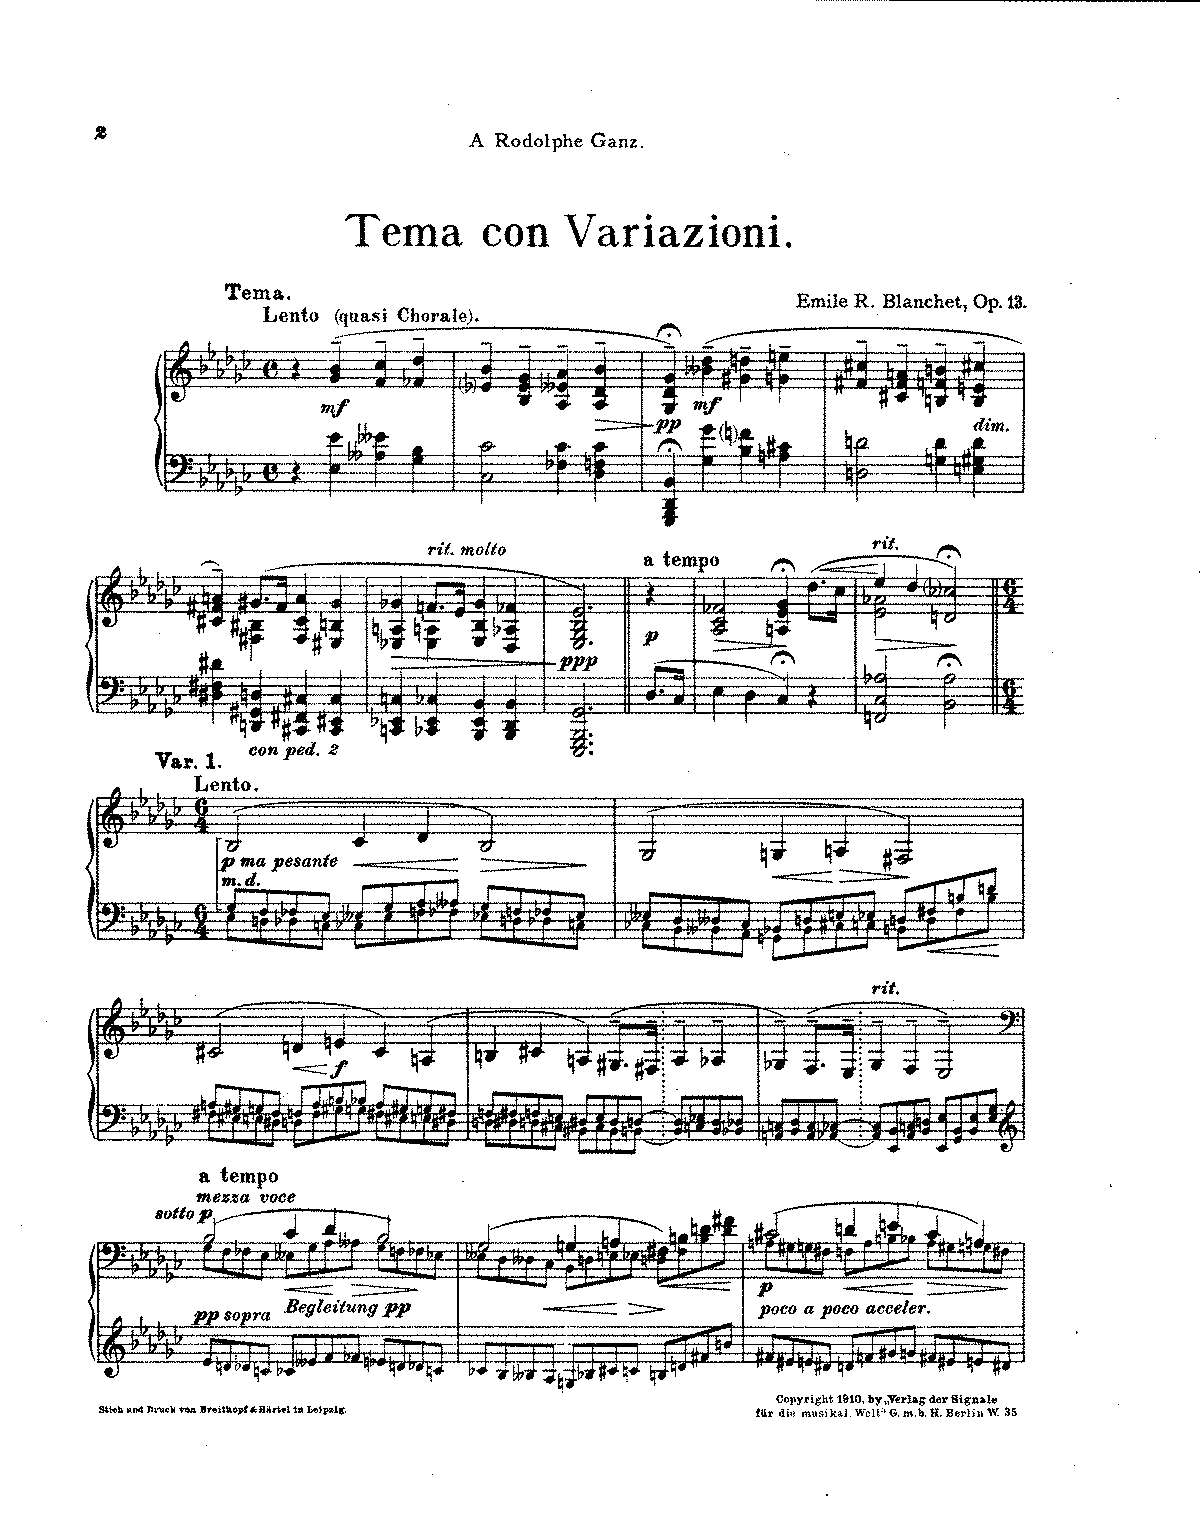 Blanchet, Emile - Theme & Variations, Op.13 (pf).pdf